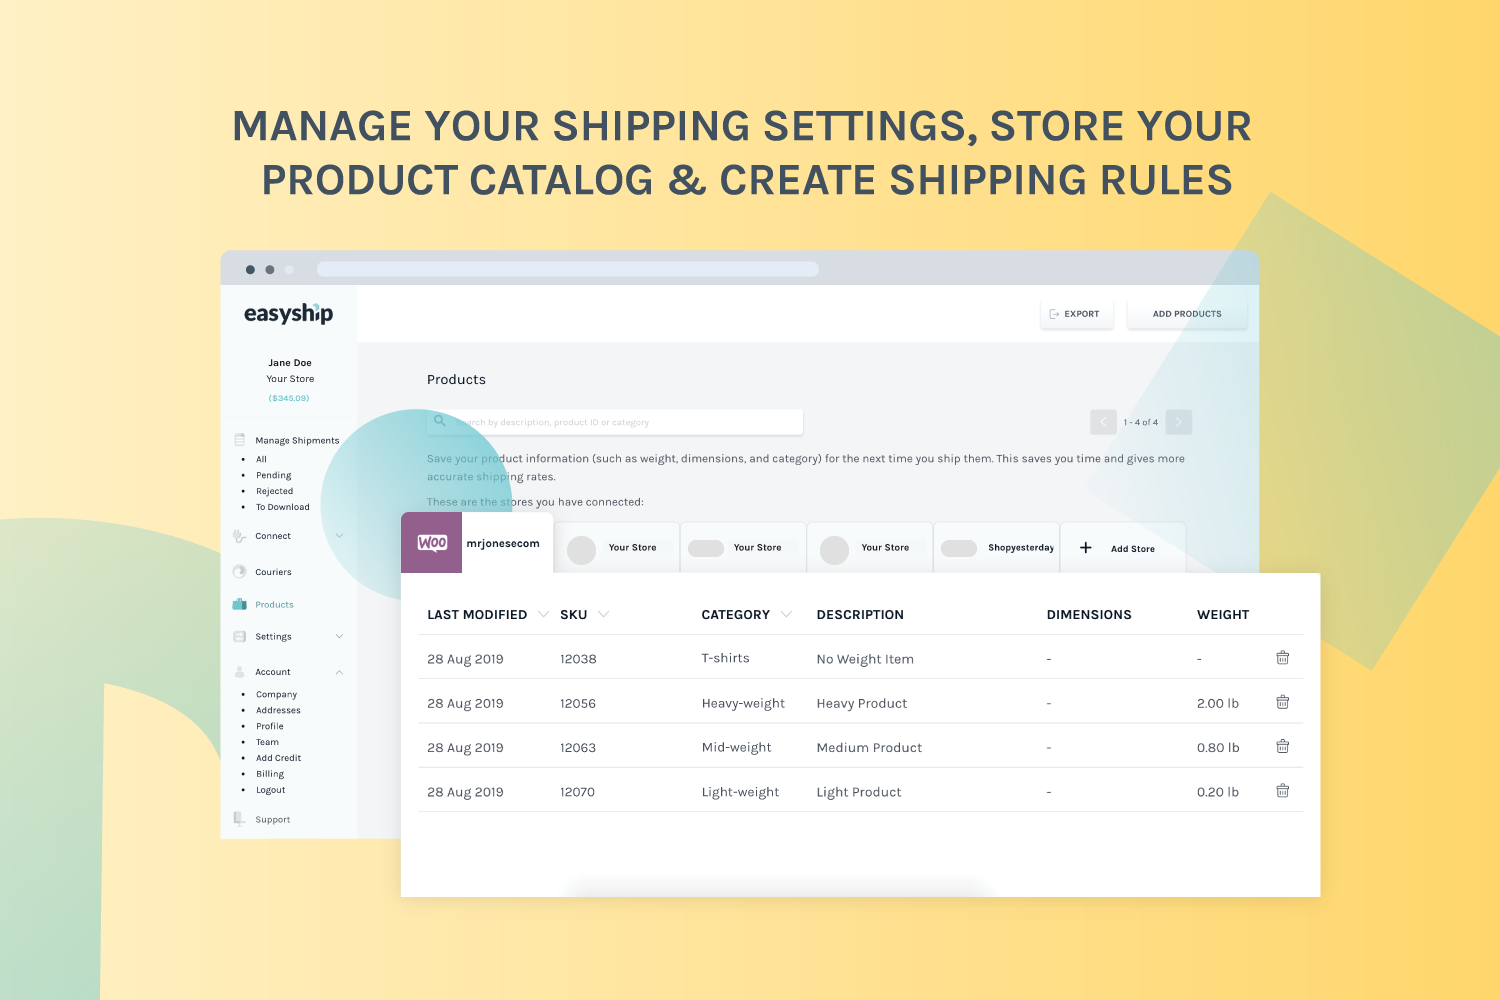 Manage your shipping settings, store your product catalog & create shipping rules